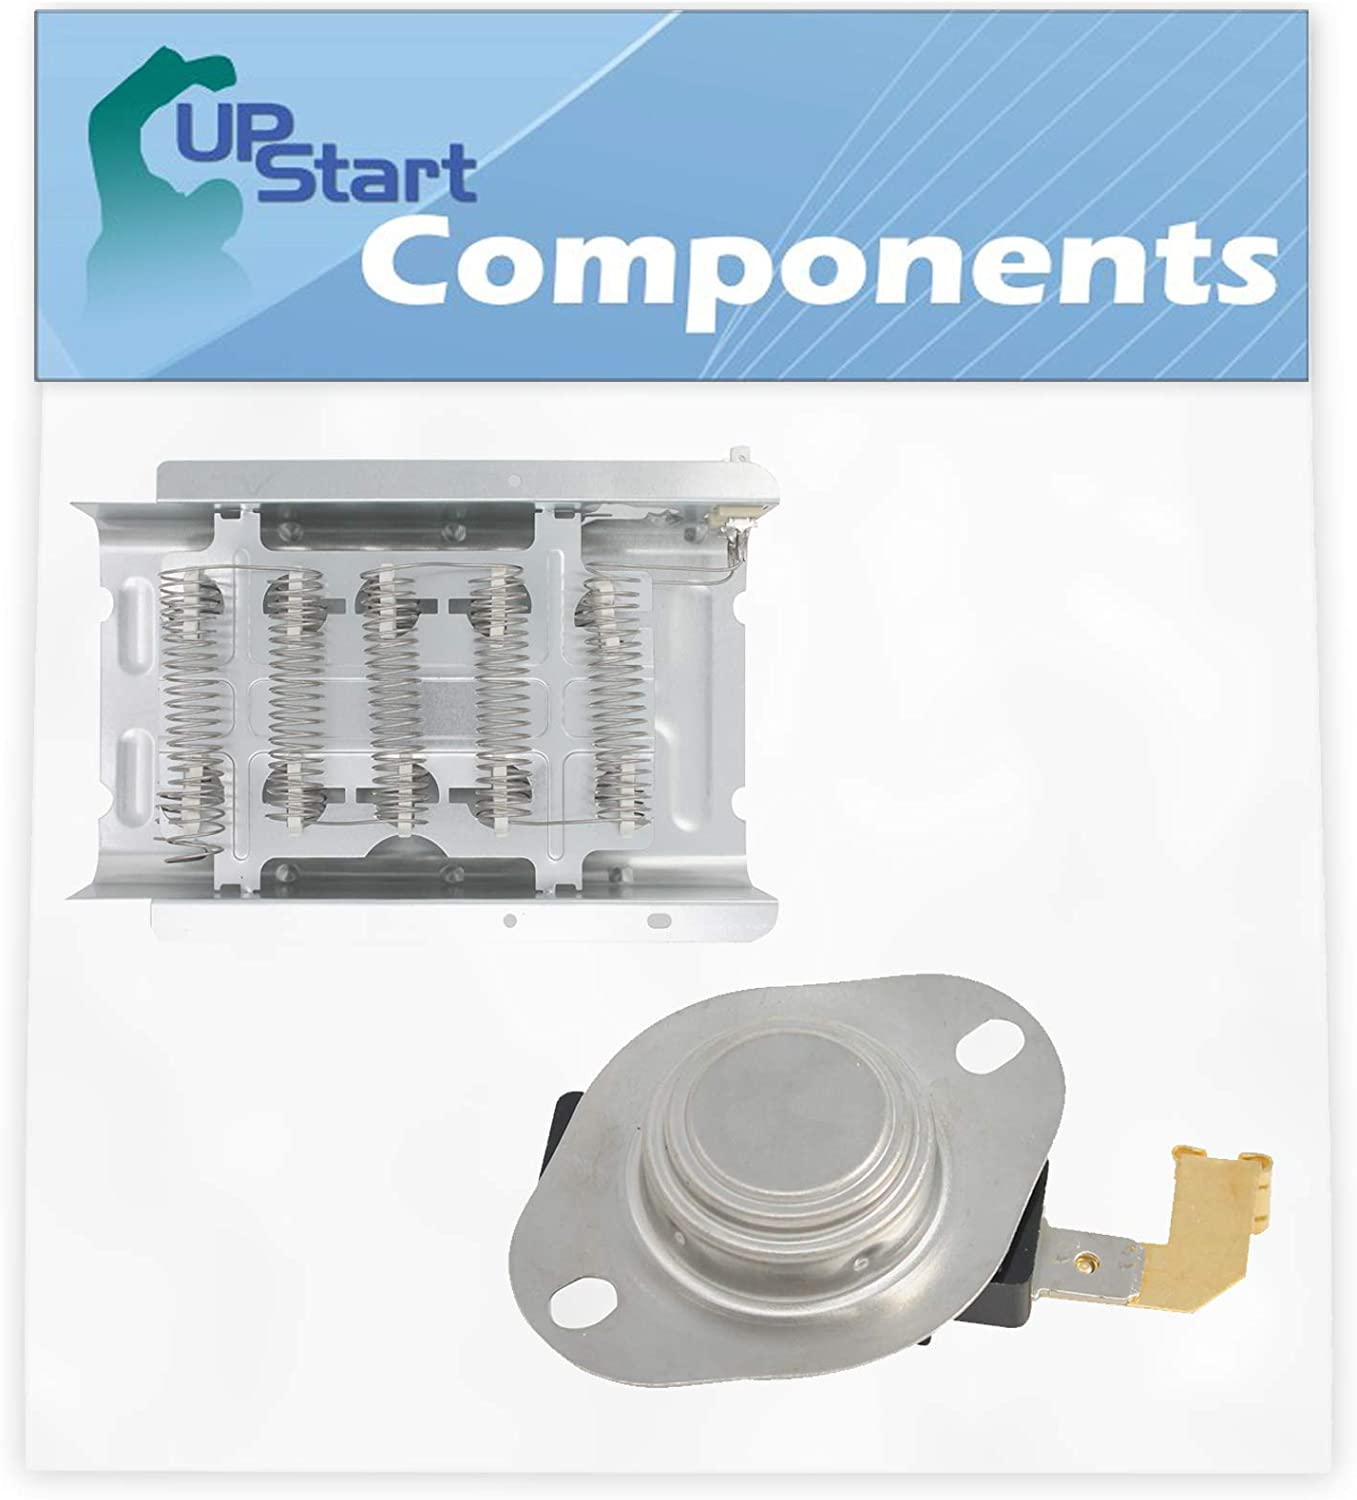 279838 Dryer Heating Element & 3977767 High Limit Thermostat Kit Replacement for Whirlpool SEDX600JQ1 Dryer - Compatible with 279838 and 3977767 Heater Element and Thermostat Combo Pack